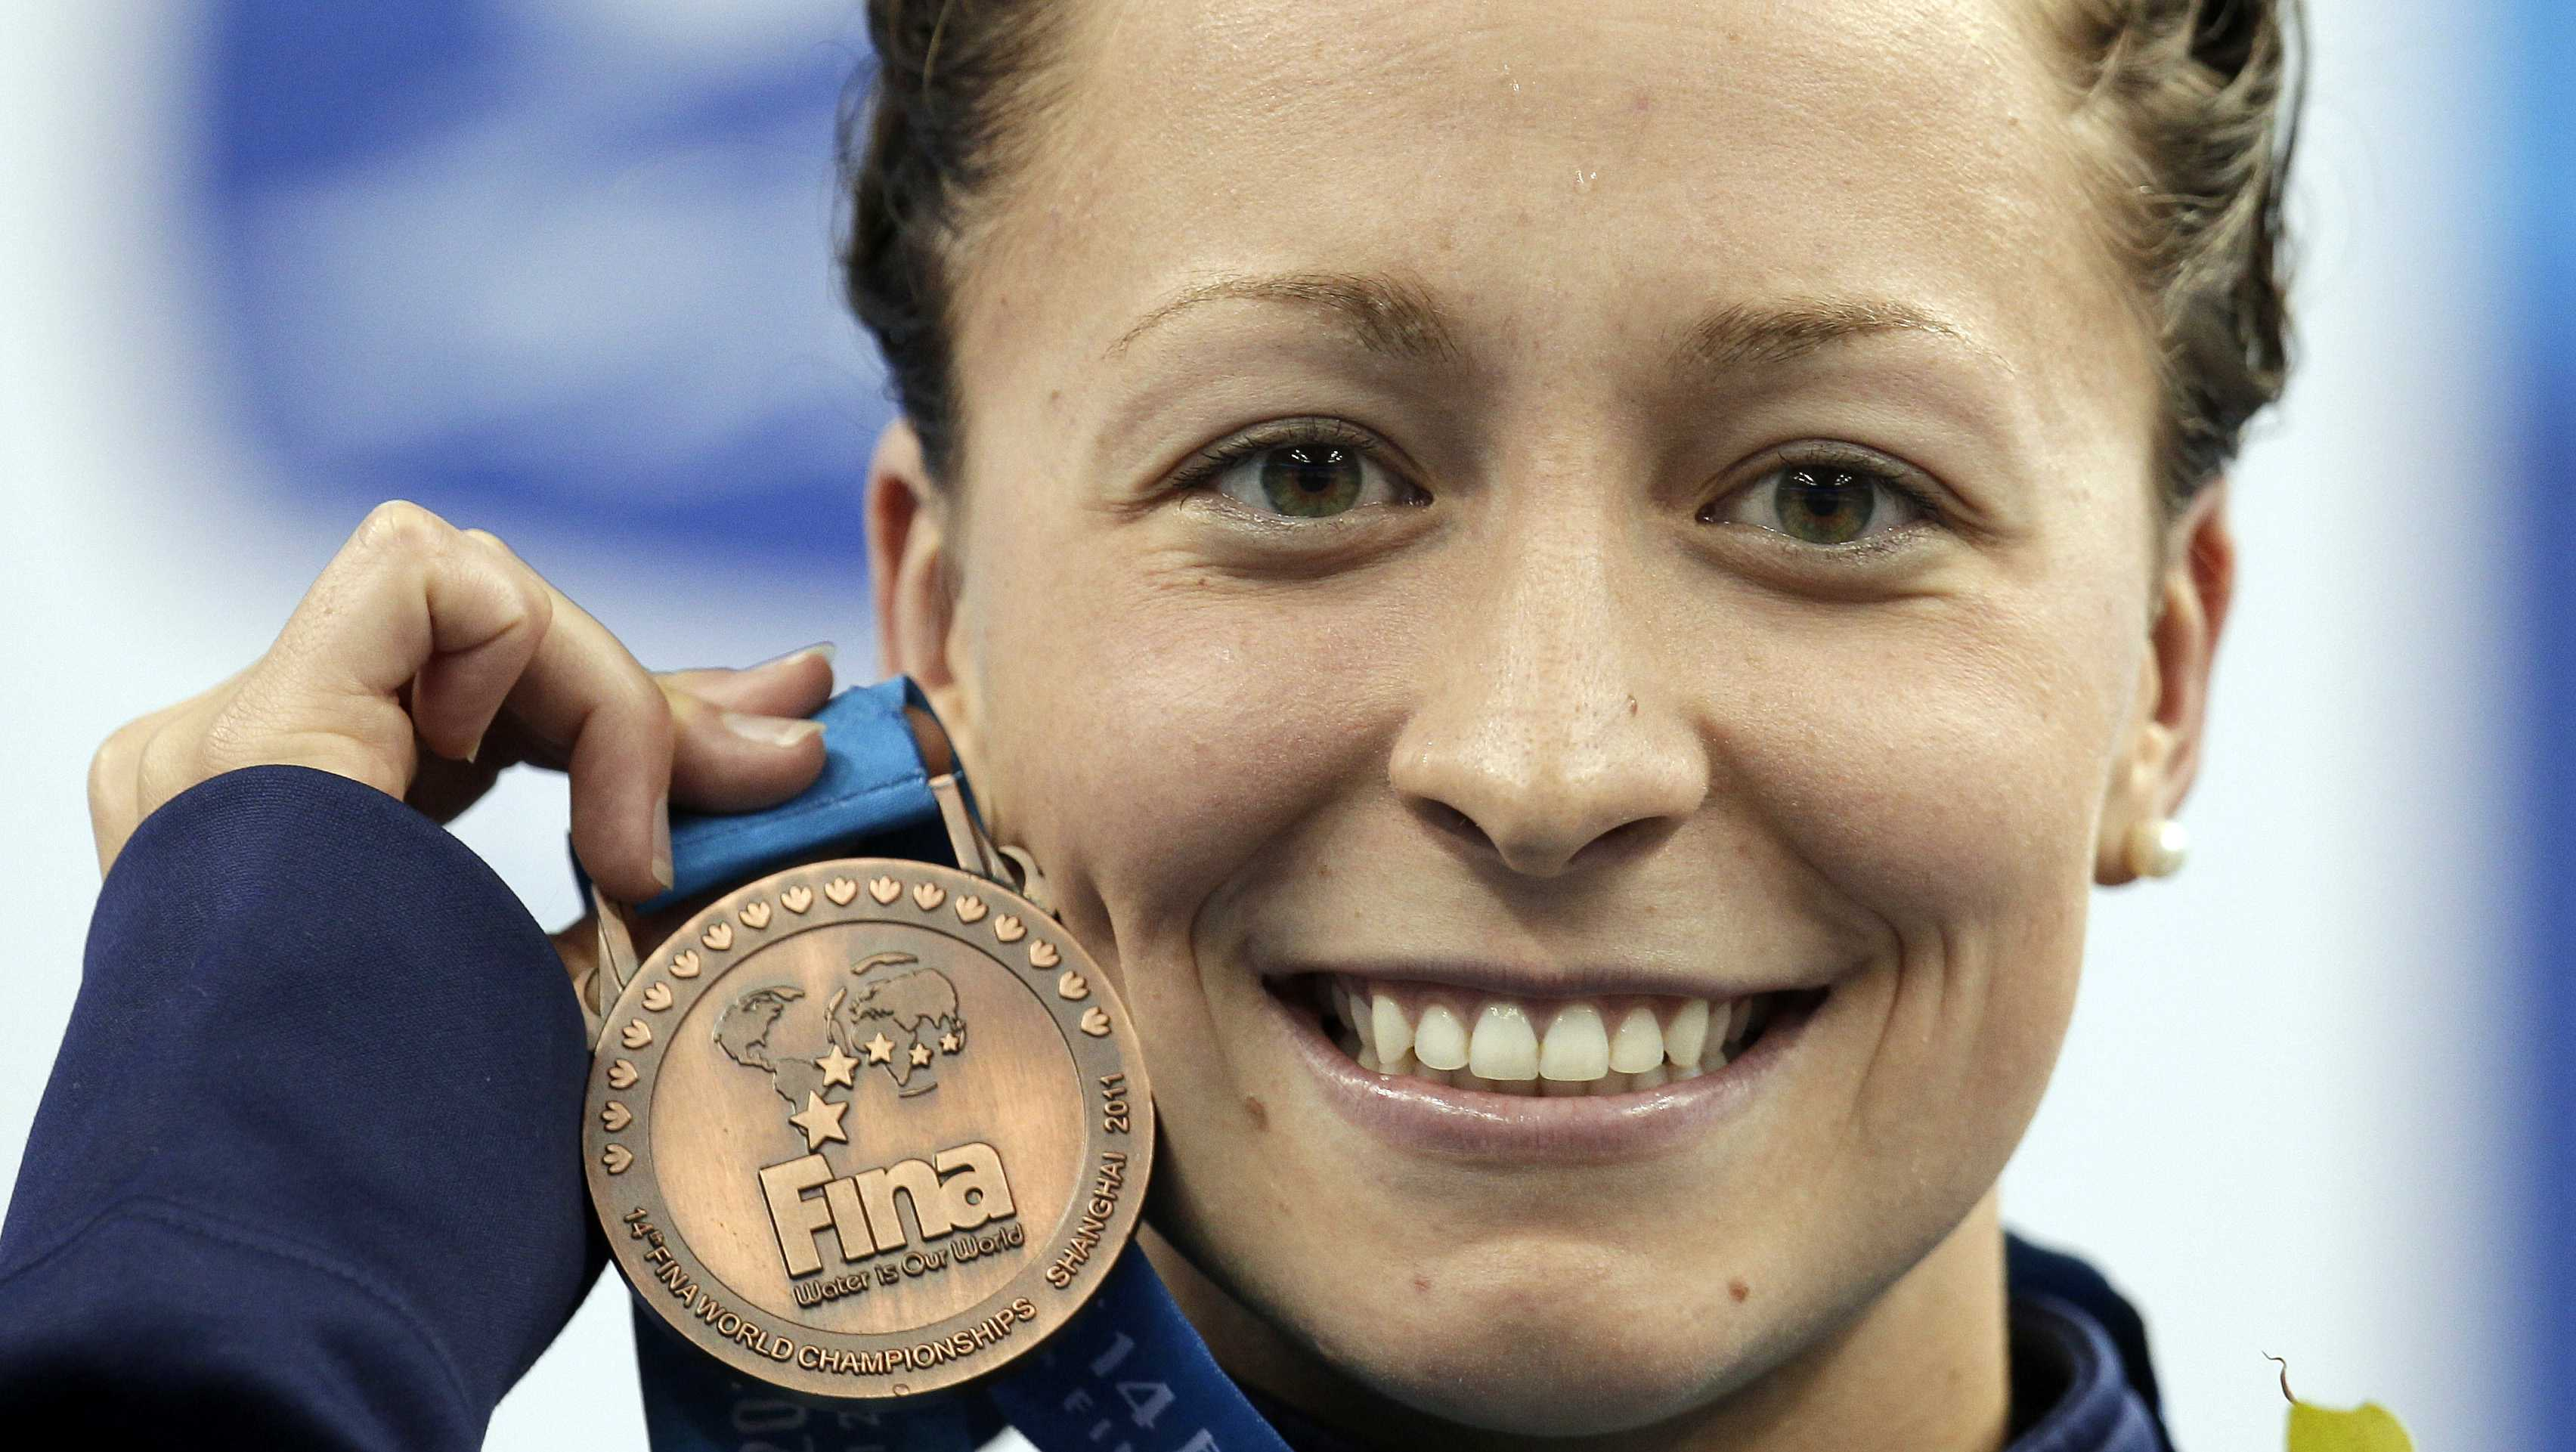 In this July 25, 2011, file photo, Ariana Kukors, of the United States, holds her bronze medal for the women's 200-meter Individual Medley final at the FINA 2011 Swimming World Championships in Shanghai, China.